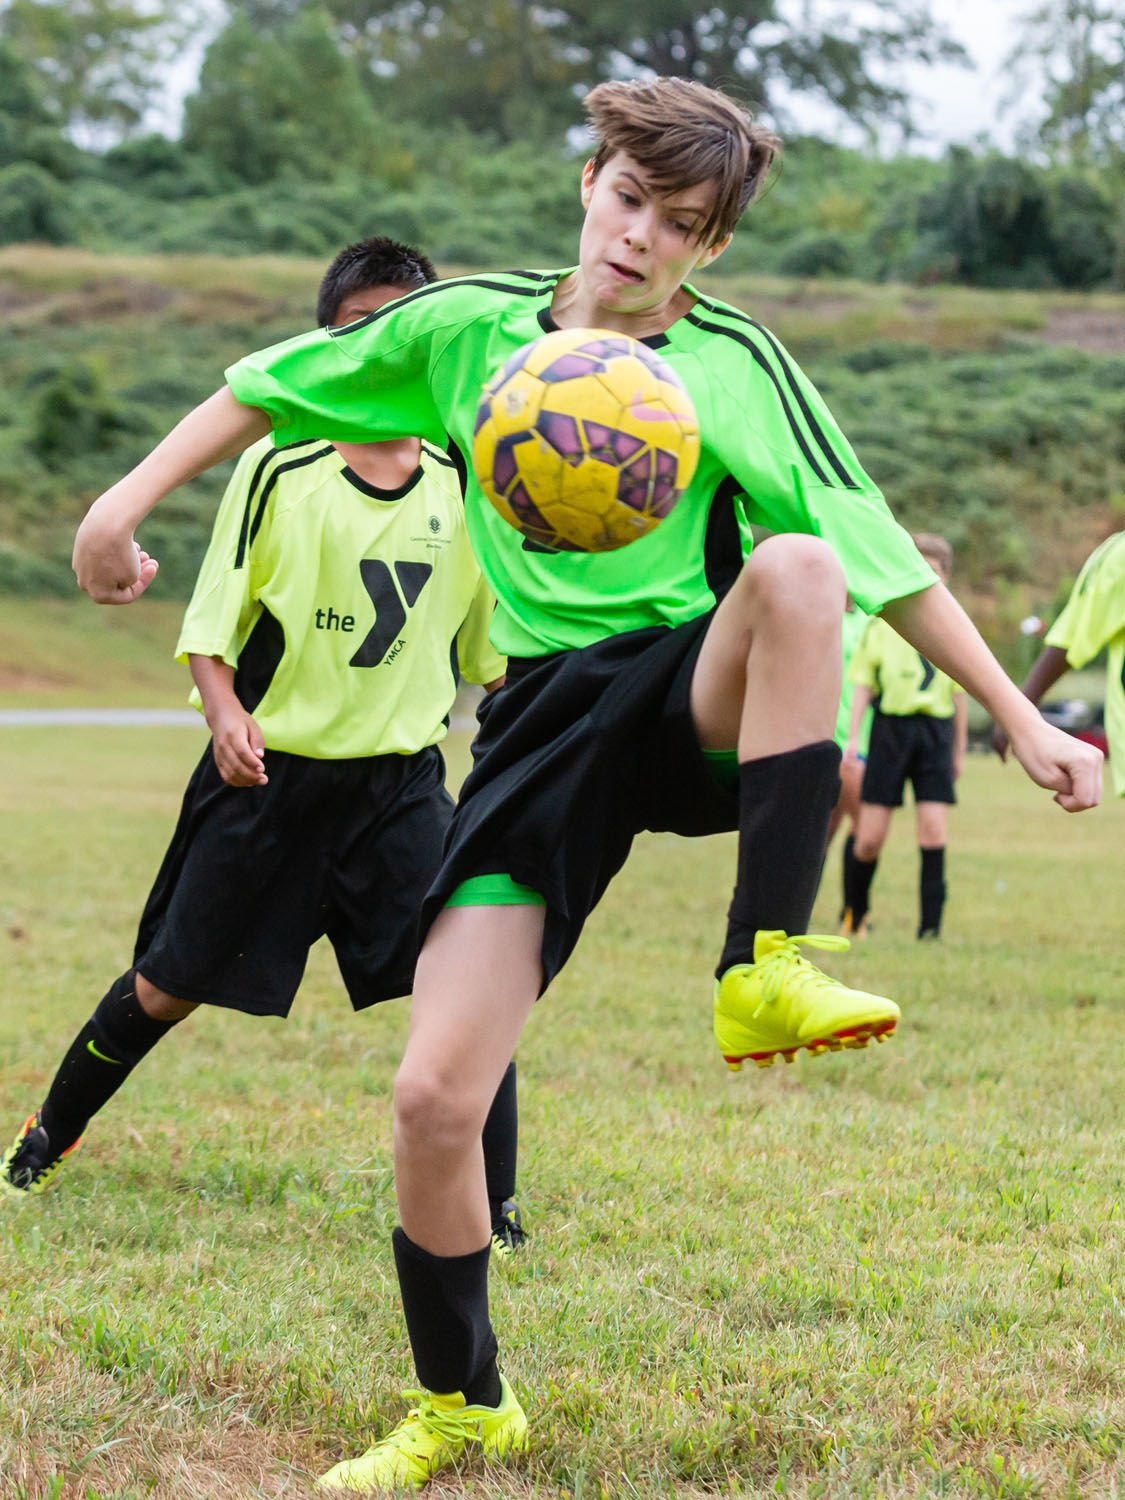 Keep on kicking: Youth soccer at the YMCA